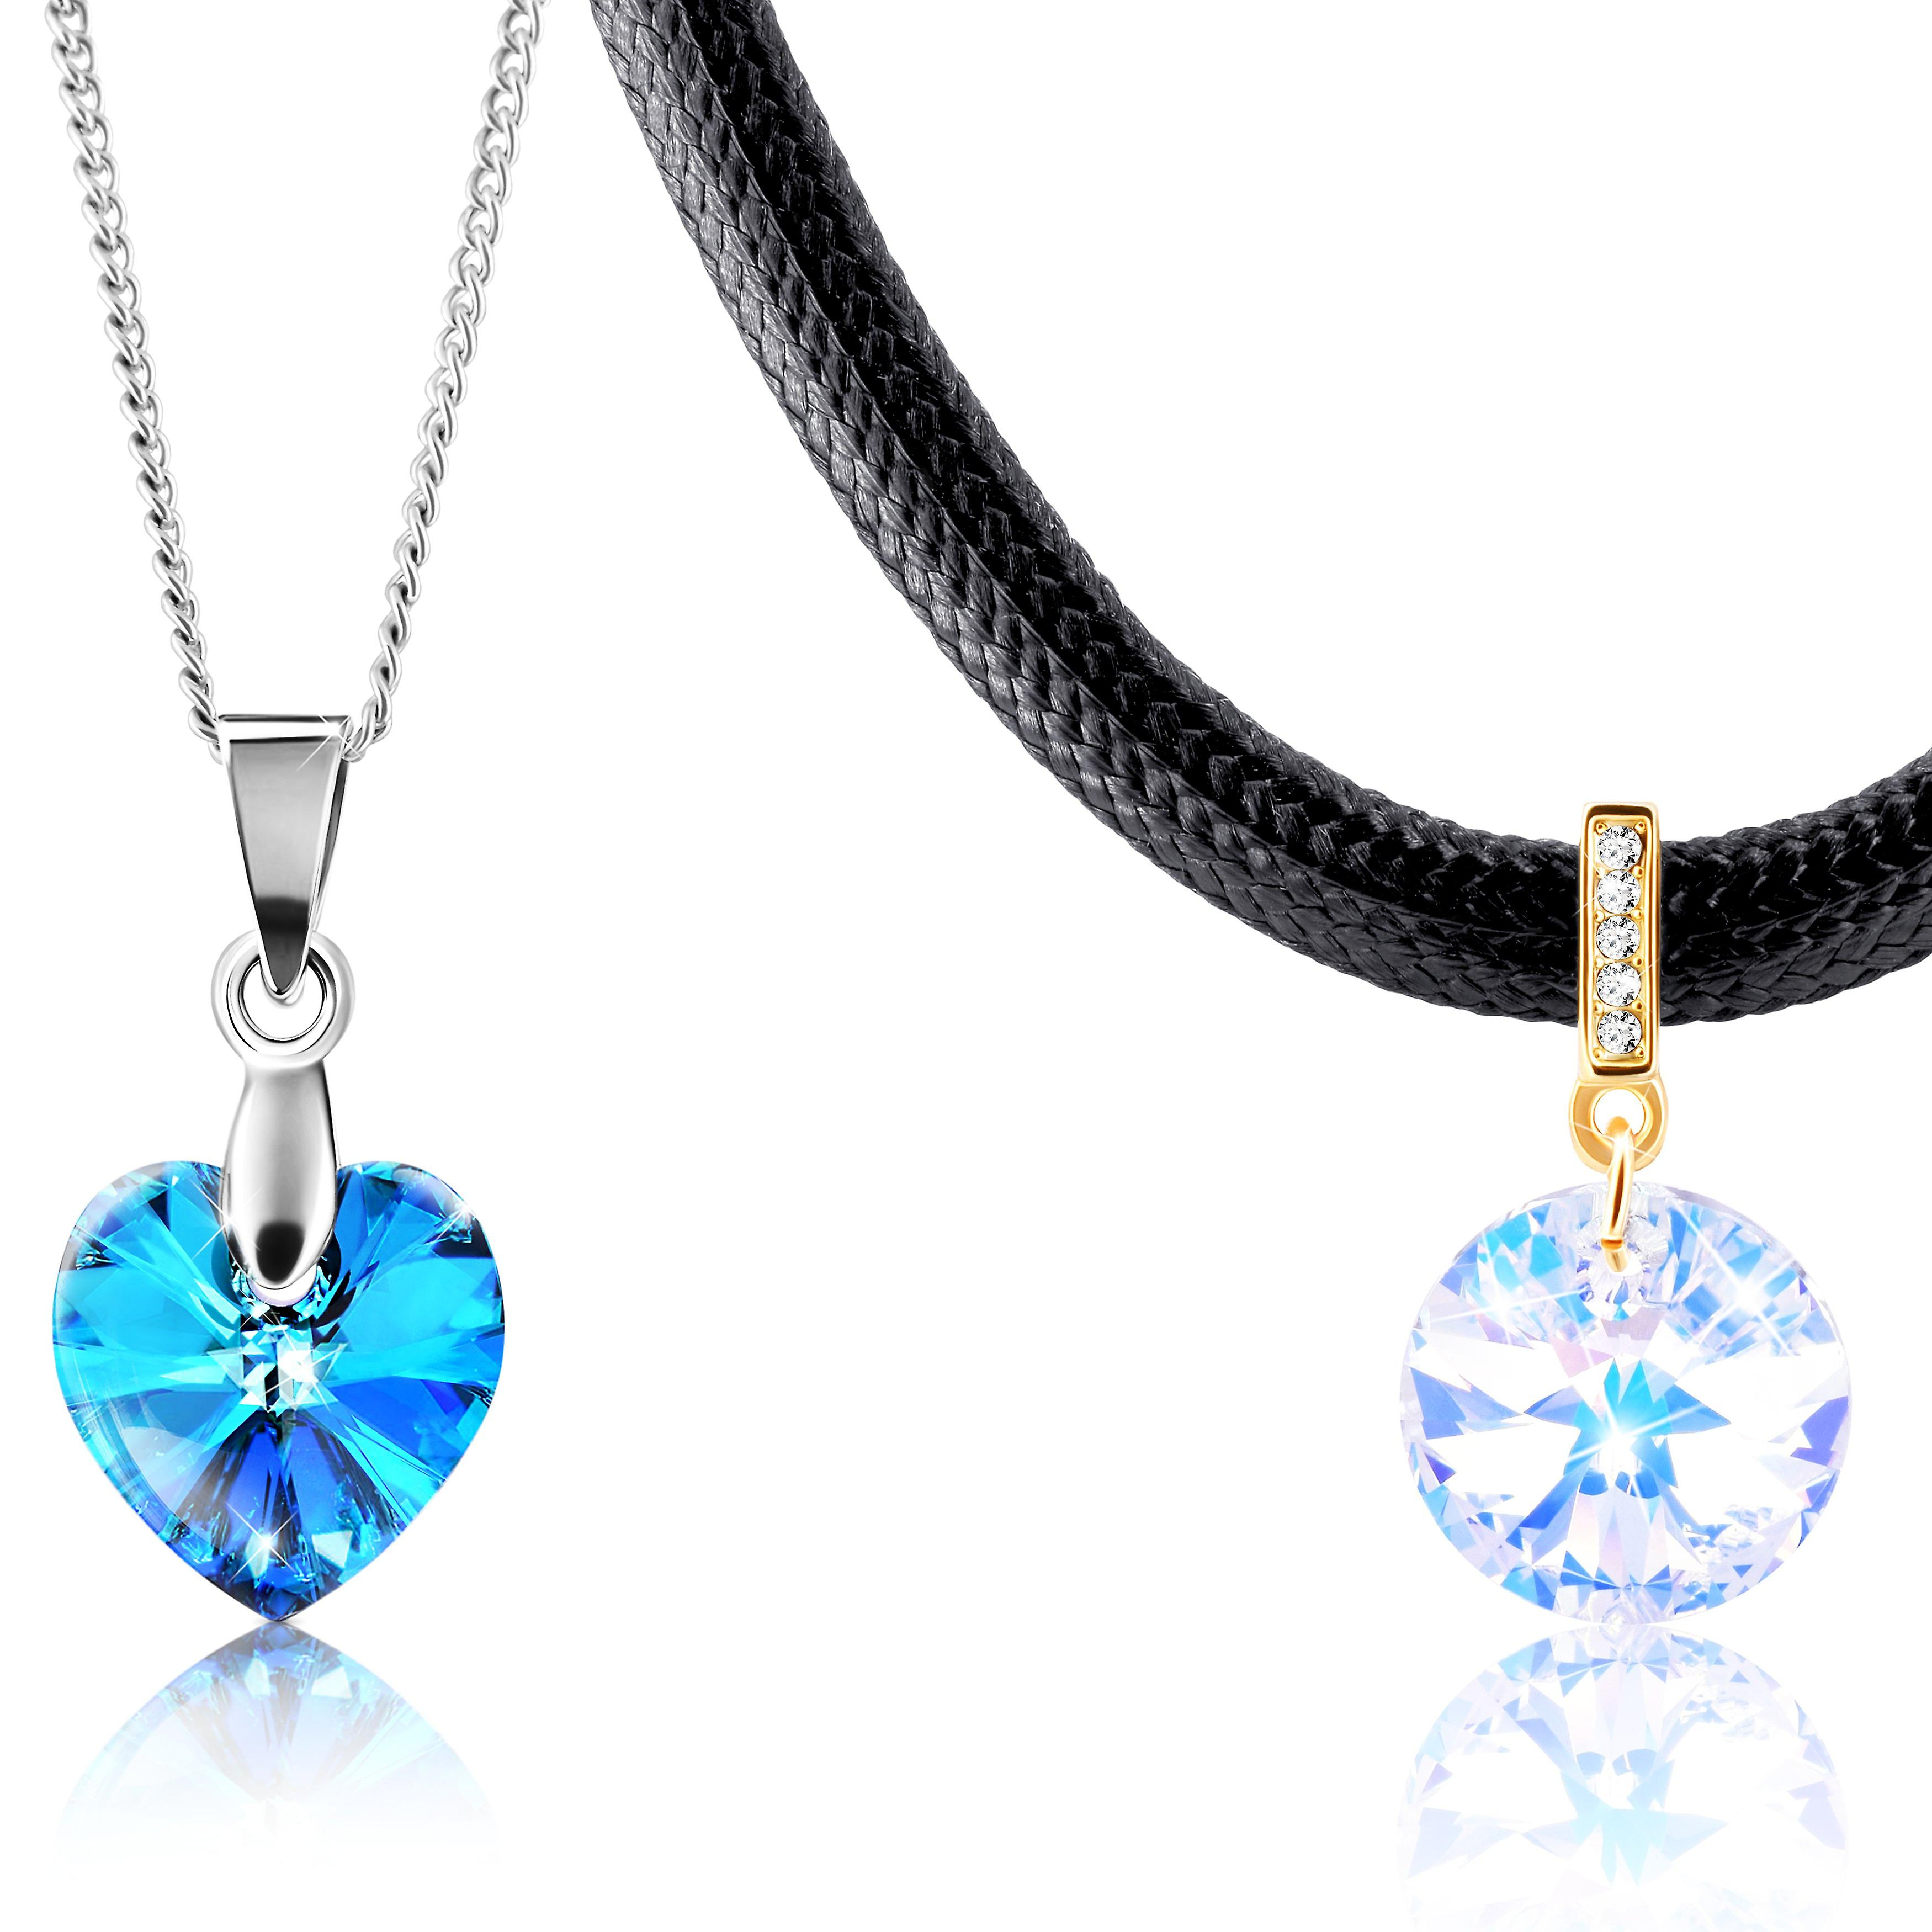 2 necklaces with swarovski crystal. 1 gold plated and 1 rhodium plated. by 2splendid. gift box included. nnqz017